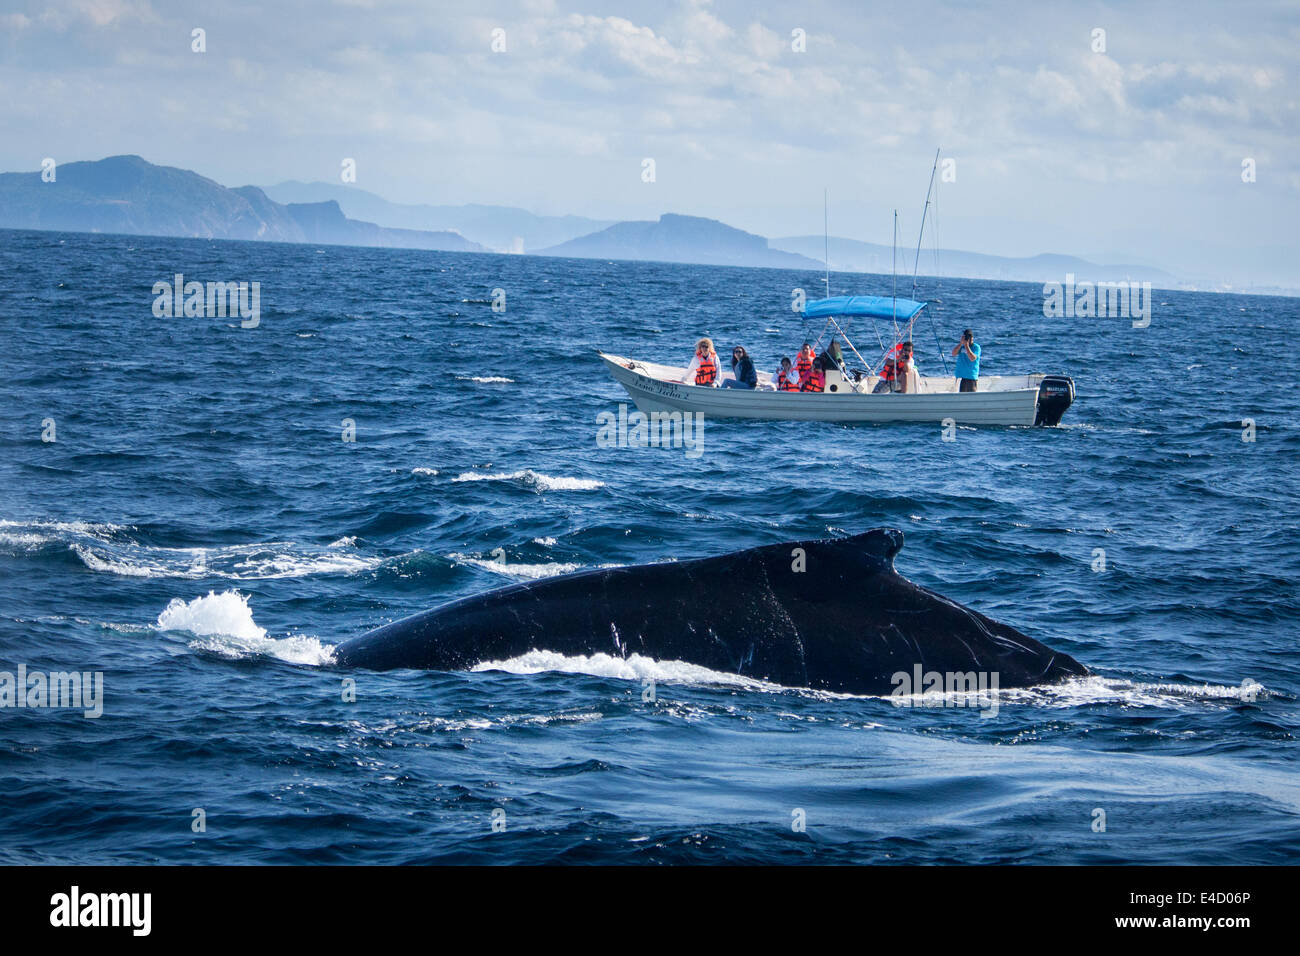 Tourists photograph a humpback whale near Mazatlan, Sinaloa, Mexico. - Stock Image